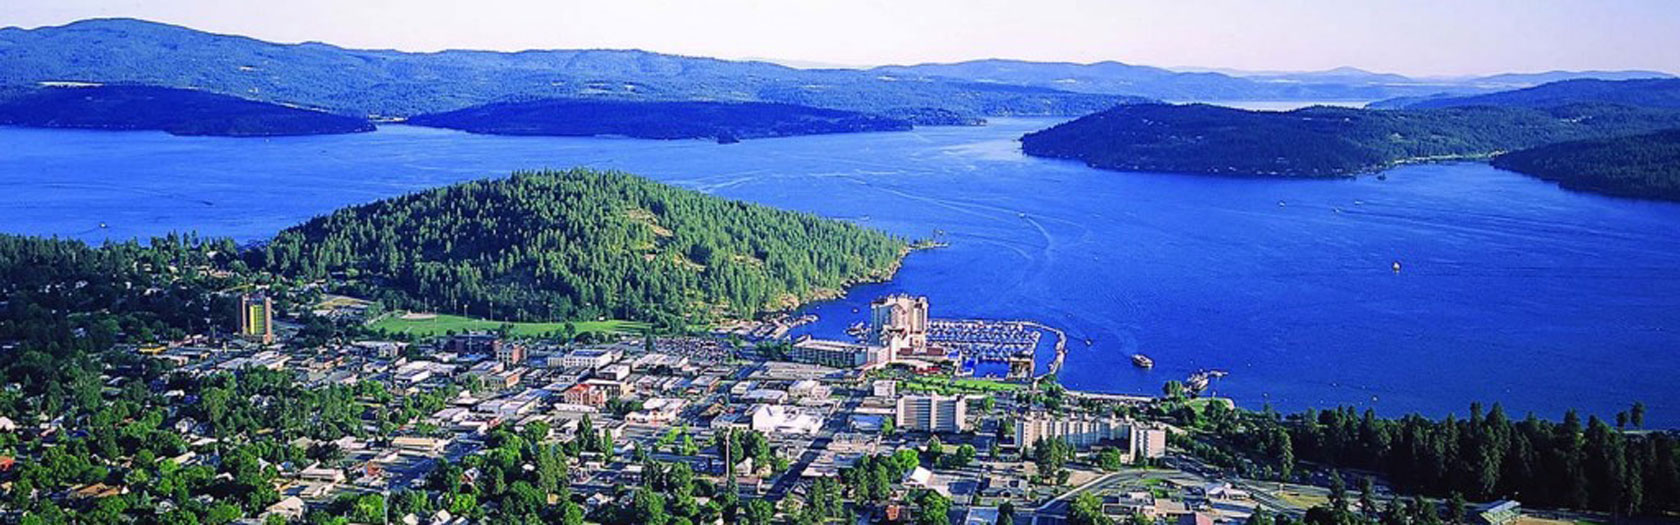 COEUR D'ALENE  North Idaho